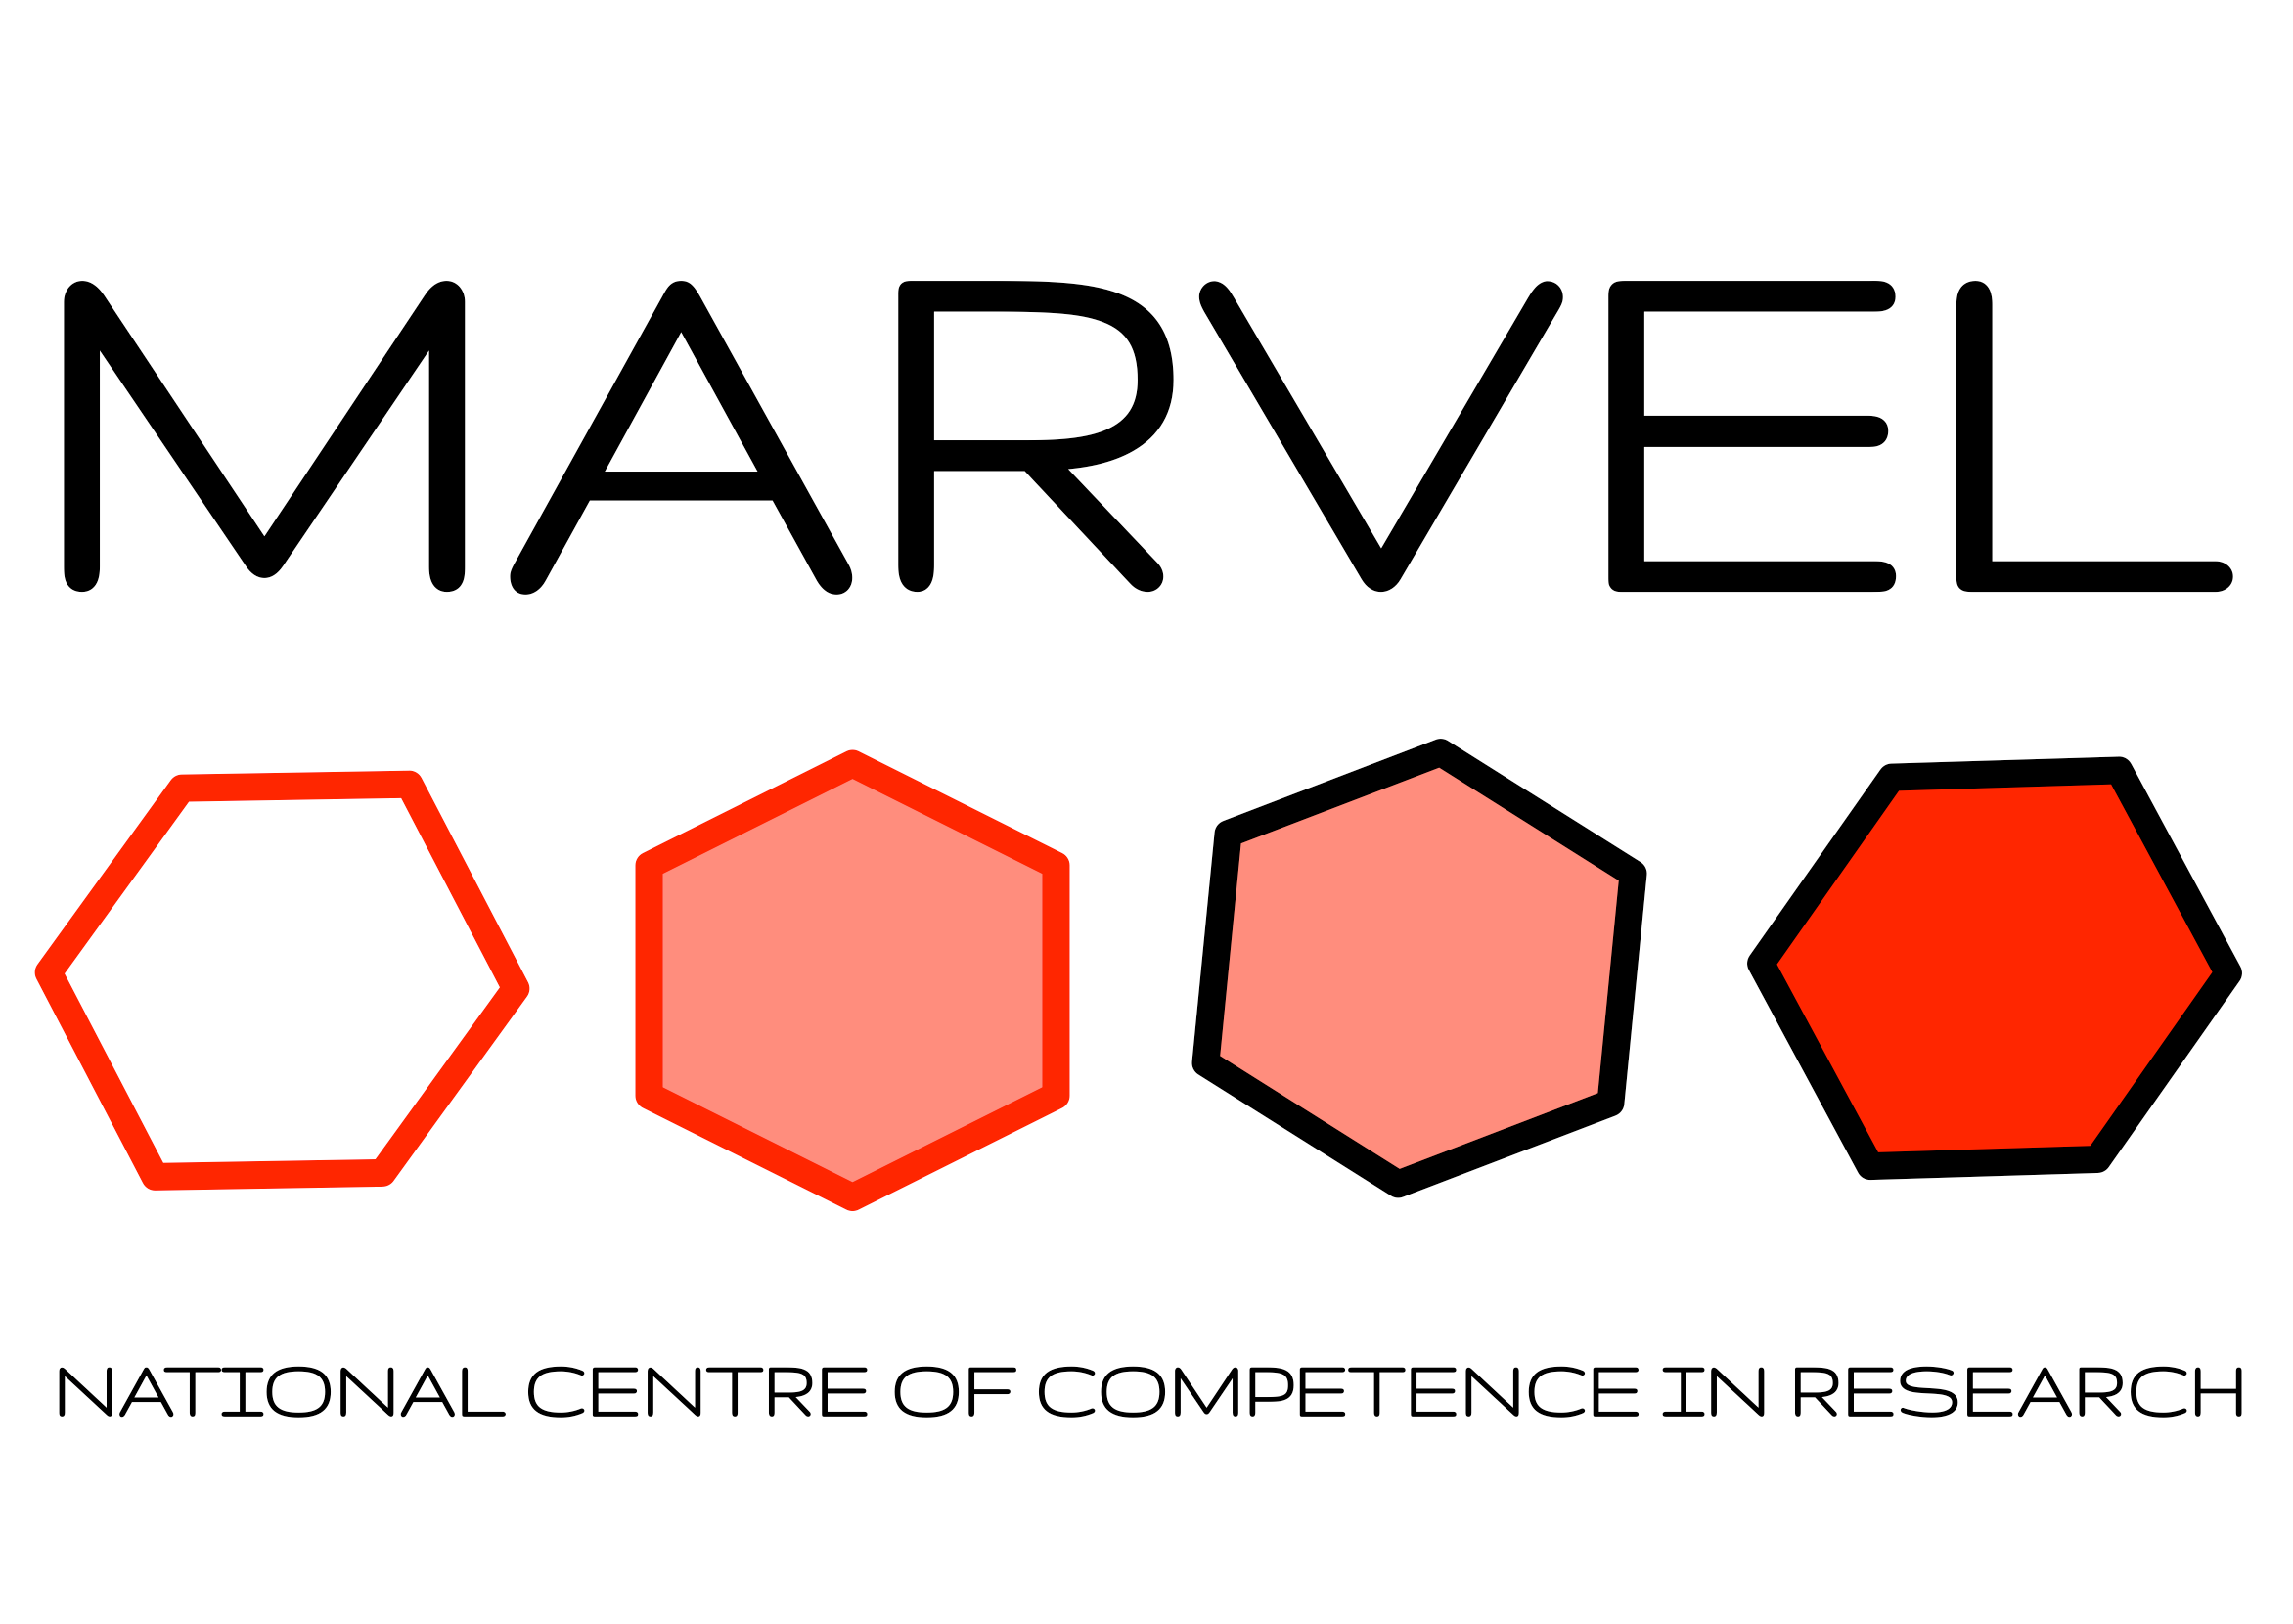 National Centre of Competence in Research MARVEL